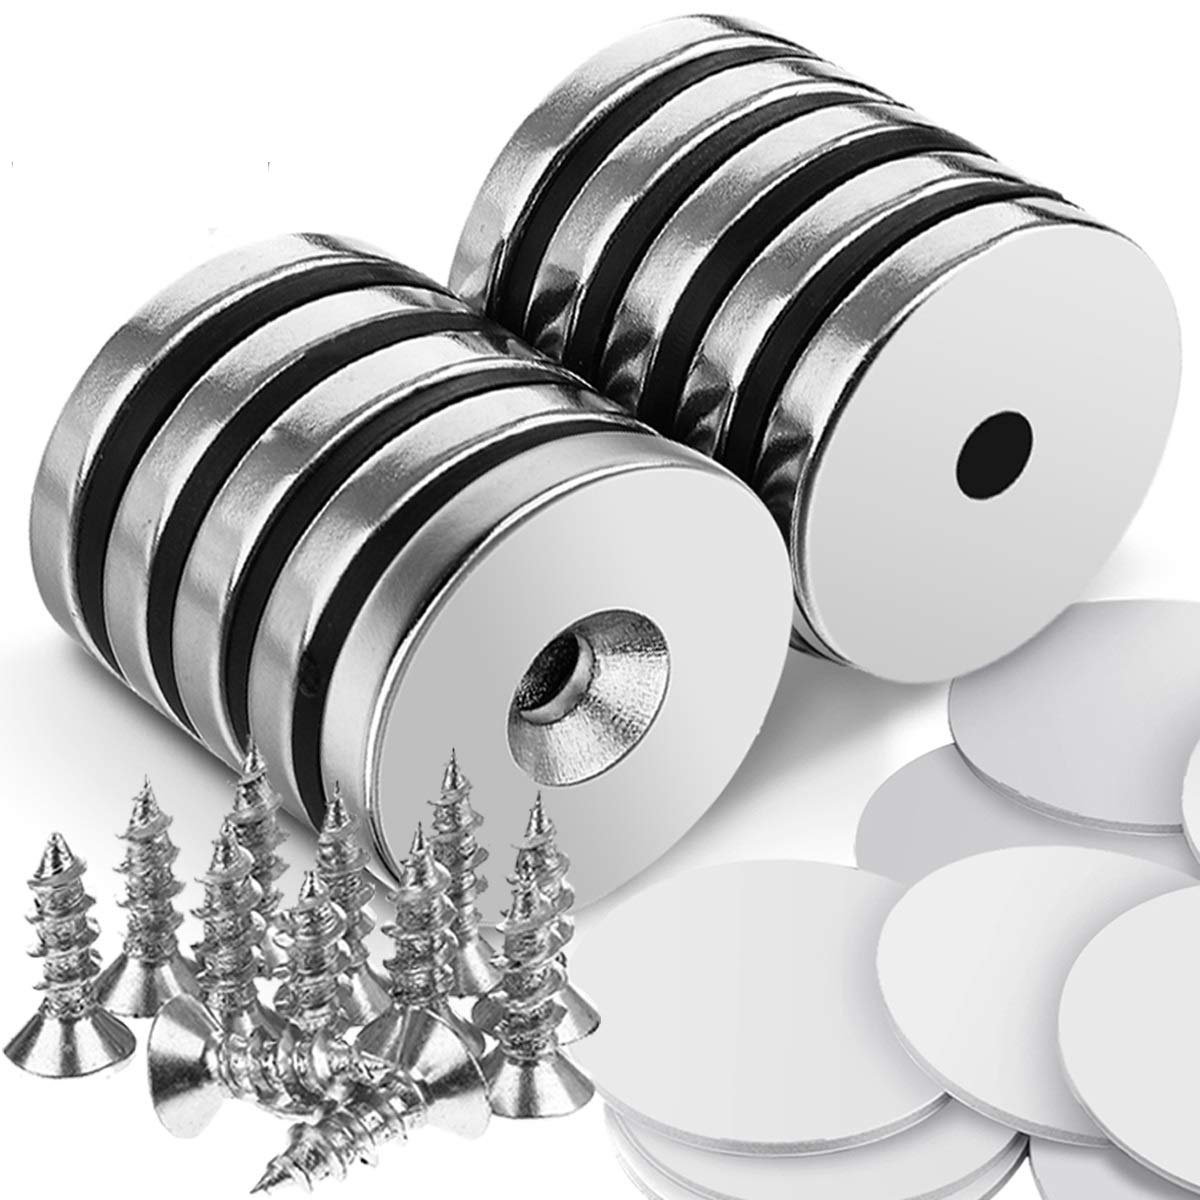 """DRILLPRO 10pcs Magnet Discs, 1.26""""D x 0.2"""" H Strong Magnet Neodymium Disc for Hanging Artwork, Magnetic Tools, Countersunk Hole Neodymium Magnets with 12pcs Screws and 10 Sheet Double-Sided Stickers"""